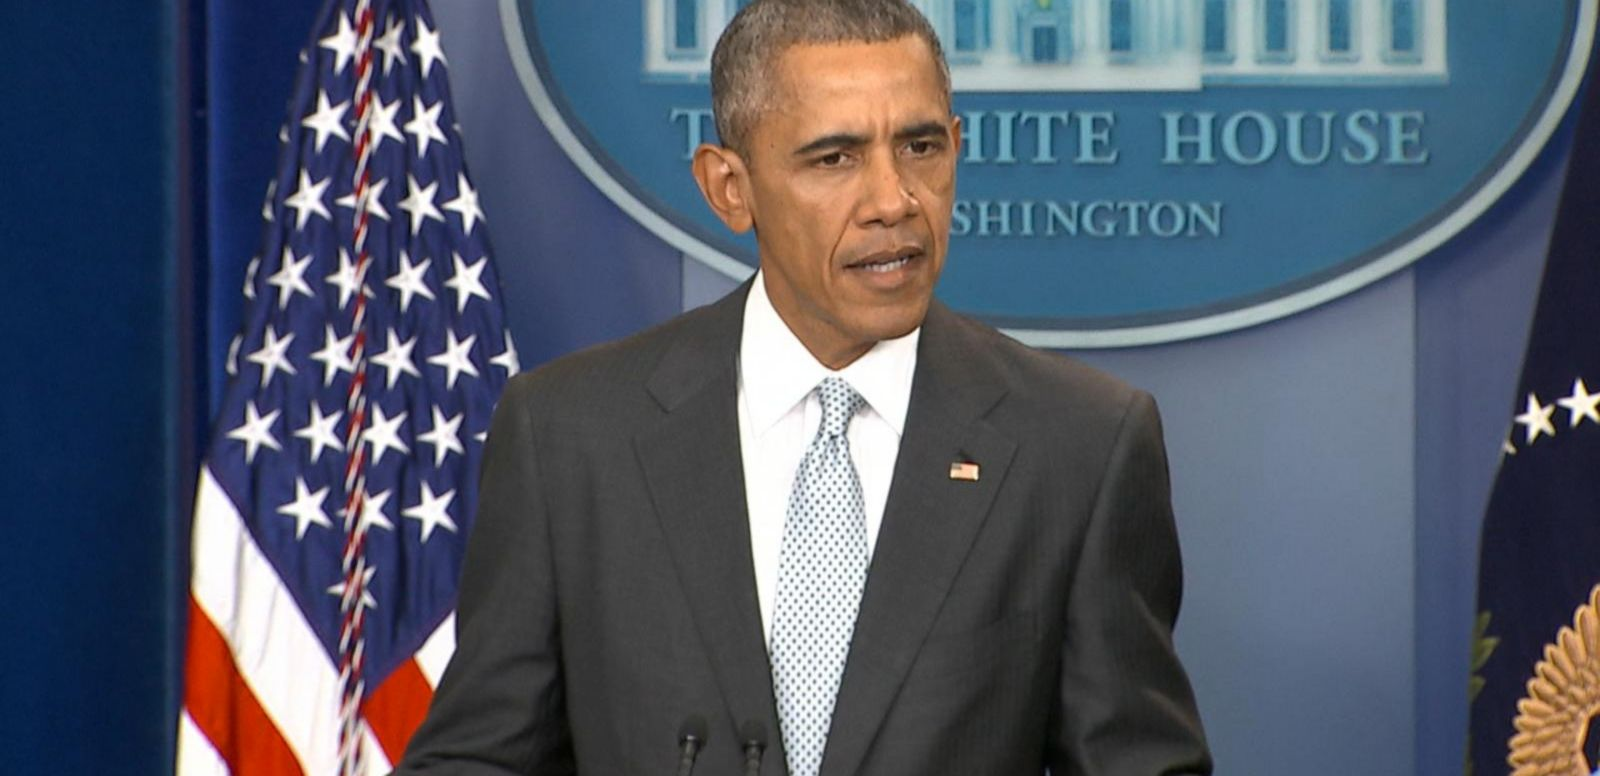 VIDEO: President Obama Stands Behind France After Deadly Attacks